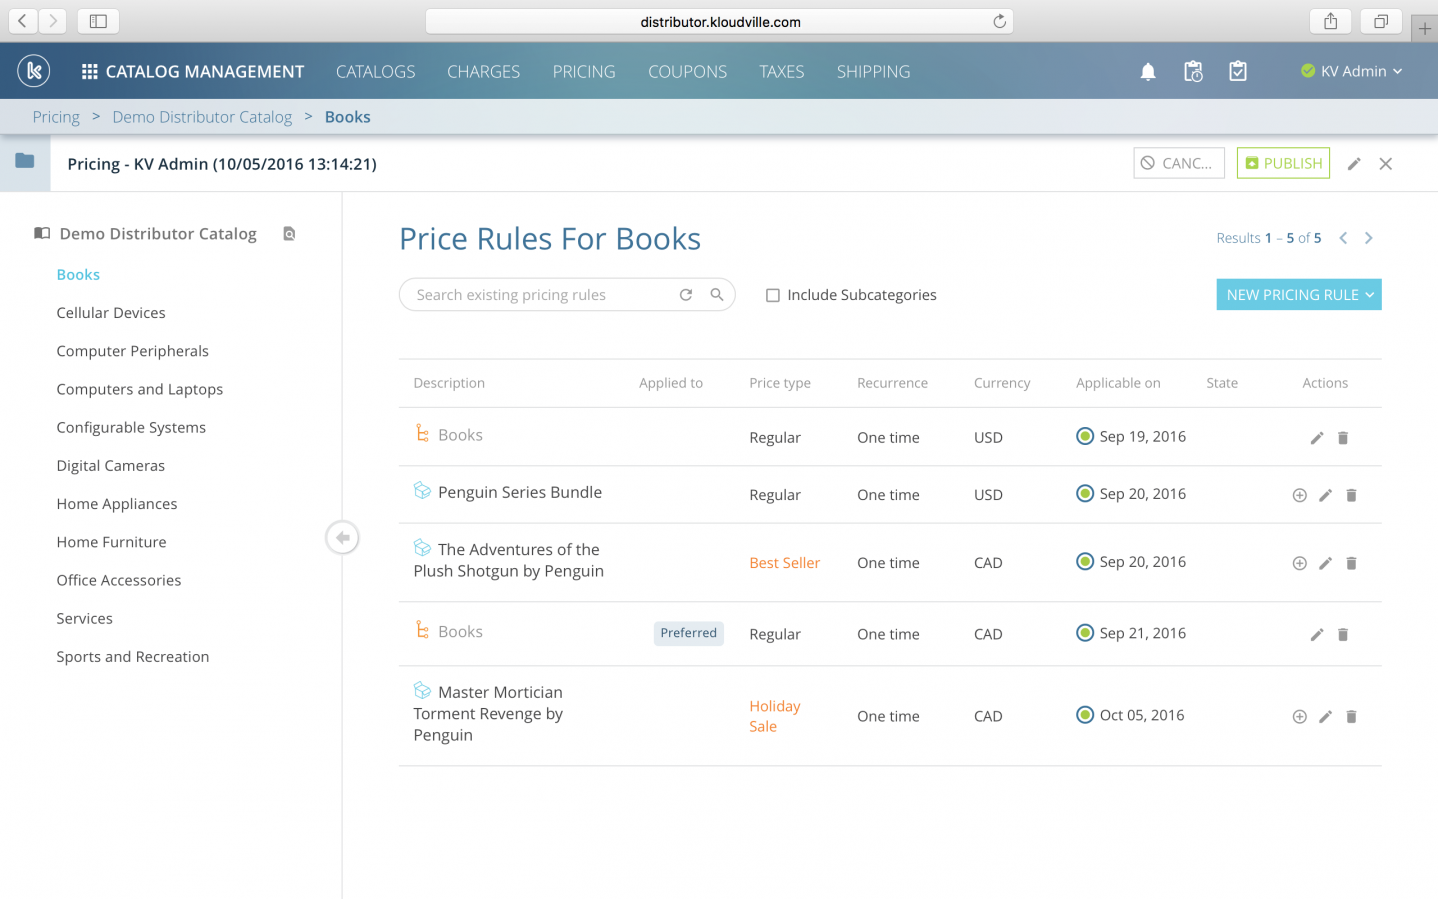 The pricing management system allows users to create a range of pricing rules